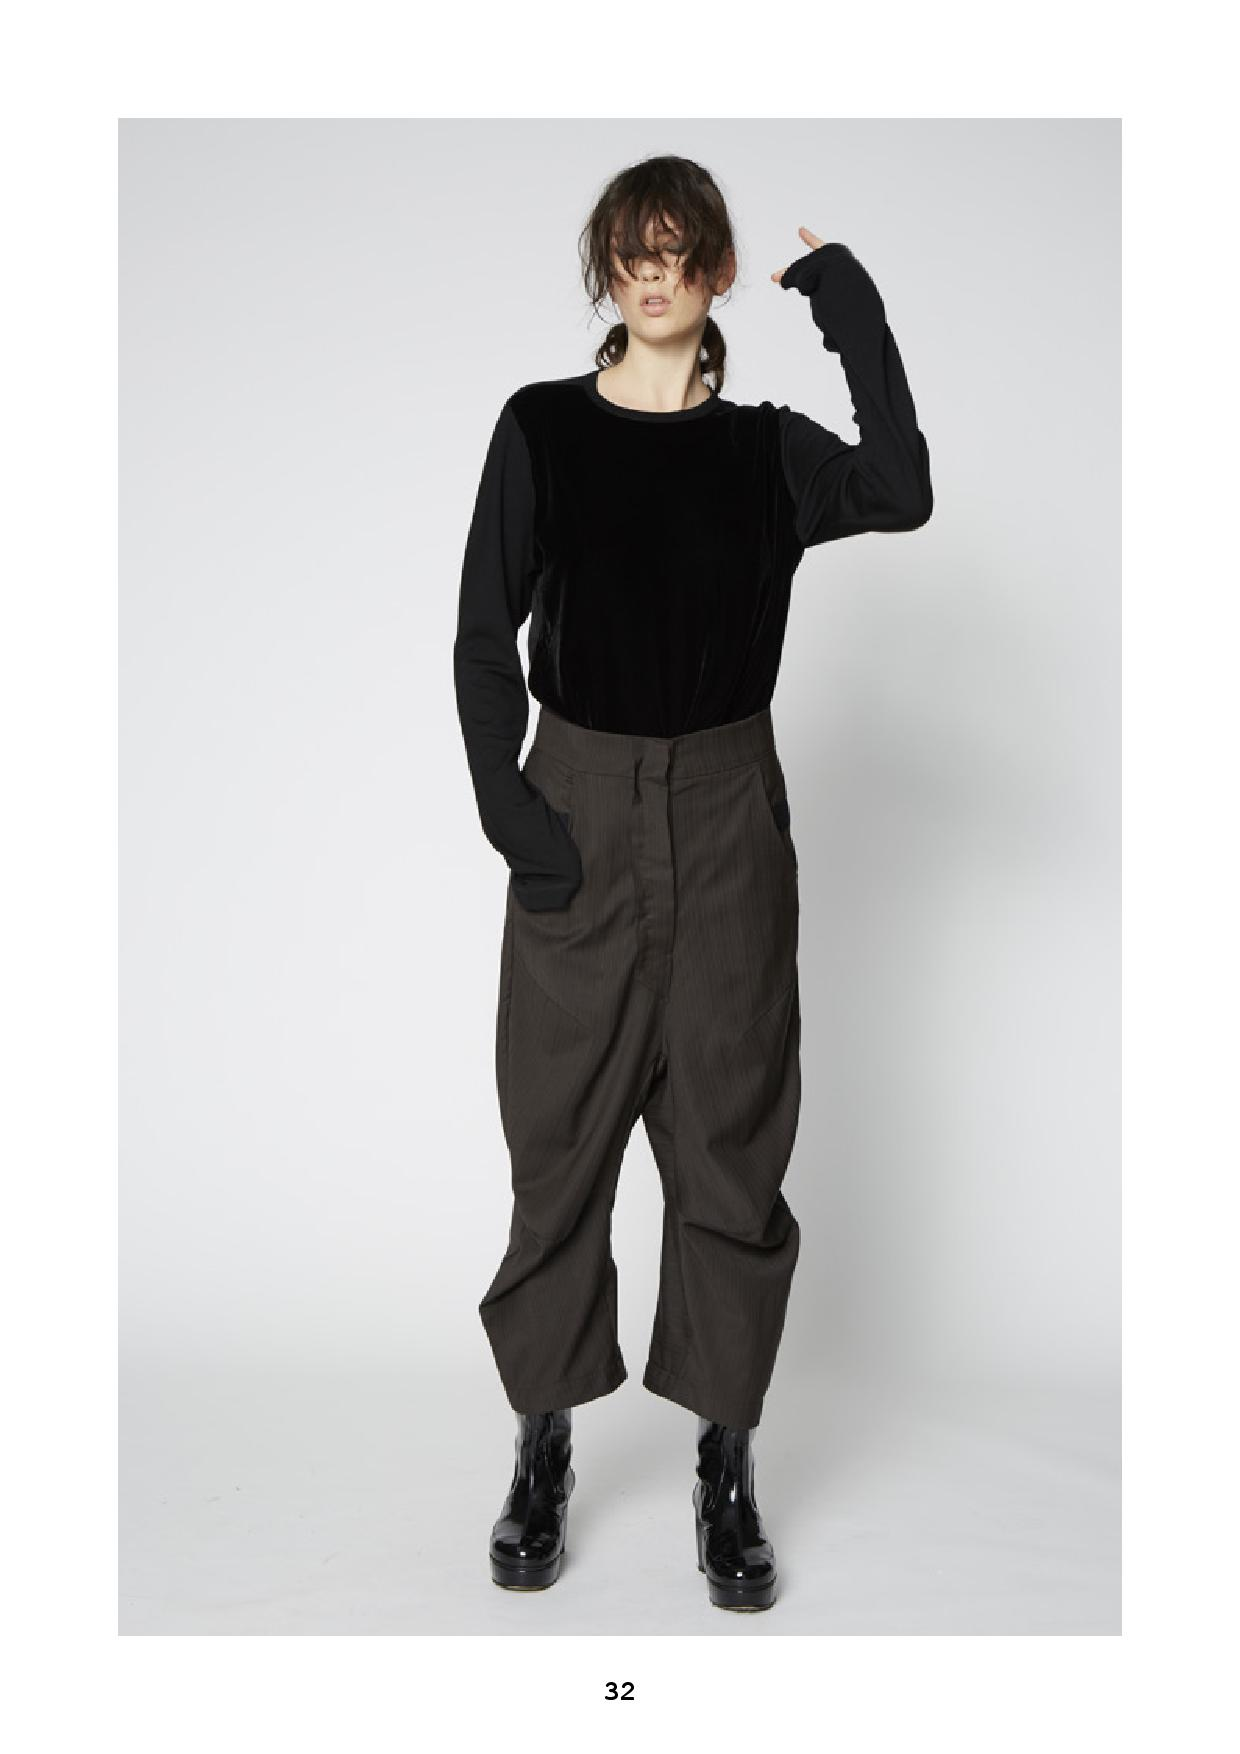 aw17 women s keypieces-page-033